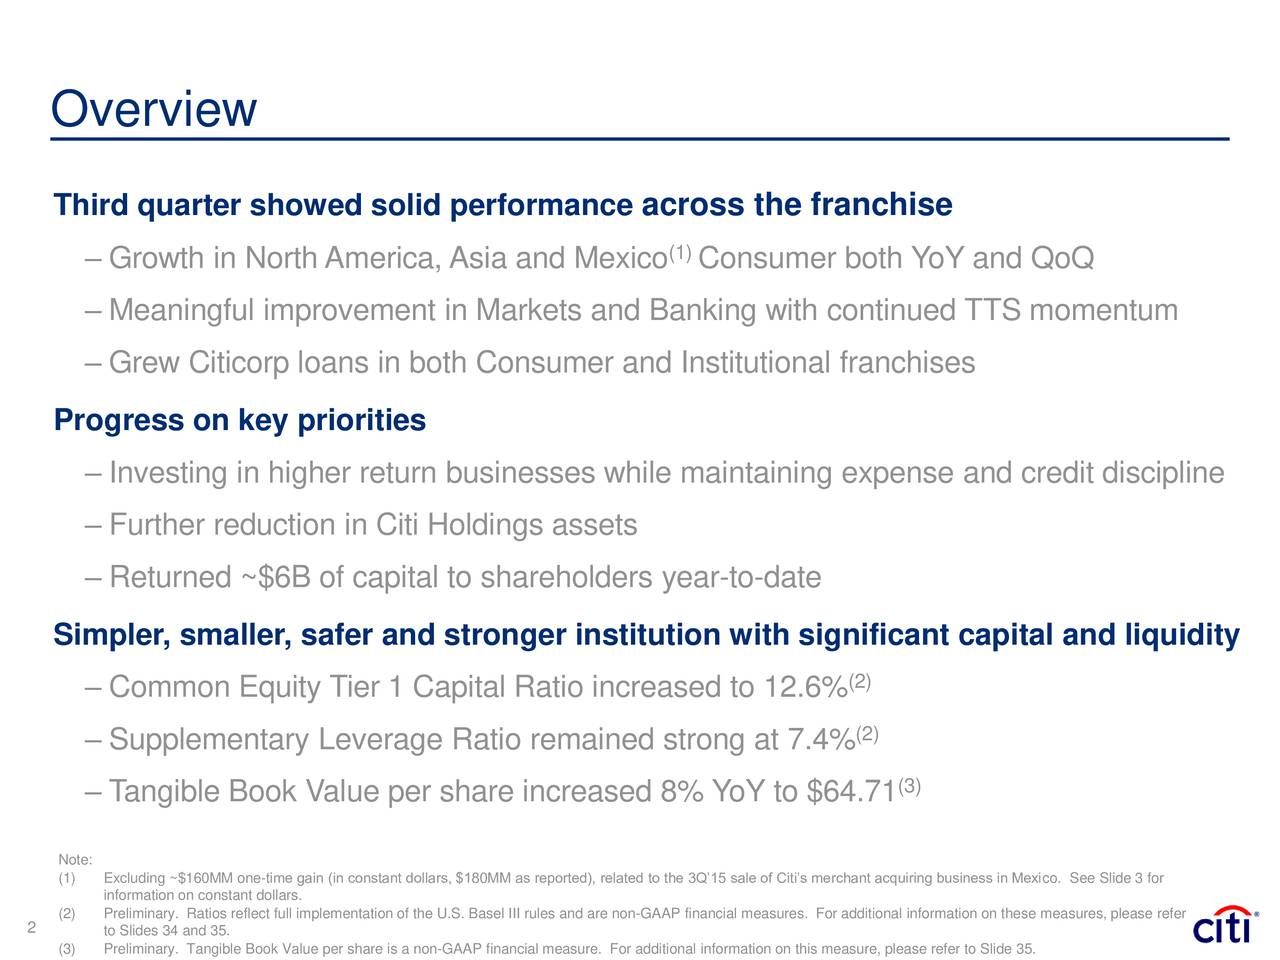 Third quarter showed solid performance across the franchise Growth in North America, Asia and Mexico Consumer both YoY and QoQ Meaningful improvement in Markets and Banking with continued TTS momentum Grew Citicorp loans in both Consumer and Institutional franchises Progress on key priorities Investing in higher return businesses while maintaining expense and credit discipline Further reduction in Citi Holdings assets Returned ~$6B of capital to shareholders year-to-date Simpler, smaller, safer and stronger institution with significant capital and liquidity Common Equity Tier 1 Capital Ratio increased to 12.6% (2) Supplementary Leverage Ratio remained strong at 7.4% (2) Tangible Book Value per share increased 8% YoY to $64.71 (3) Note: (1) information on constant dollars.(in constant dollars, $180MM as reported), related to the 3Q15 sale of Citis merchant acquiring business in Mexico. See Slide 3 for (2) Preliminary. Ratios reflect full implementation of the U.S. Basel III rules and are non-GAAP financial measures. For additional information on these measures, please refer 2 to Slides 34 and 35.